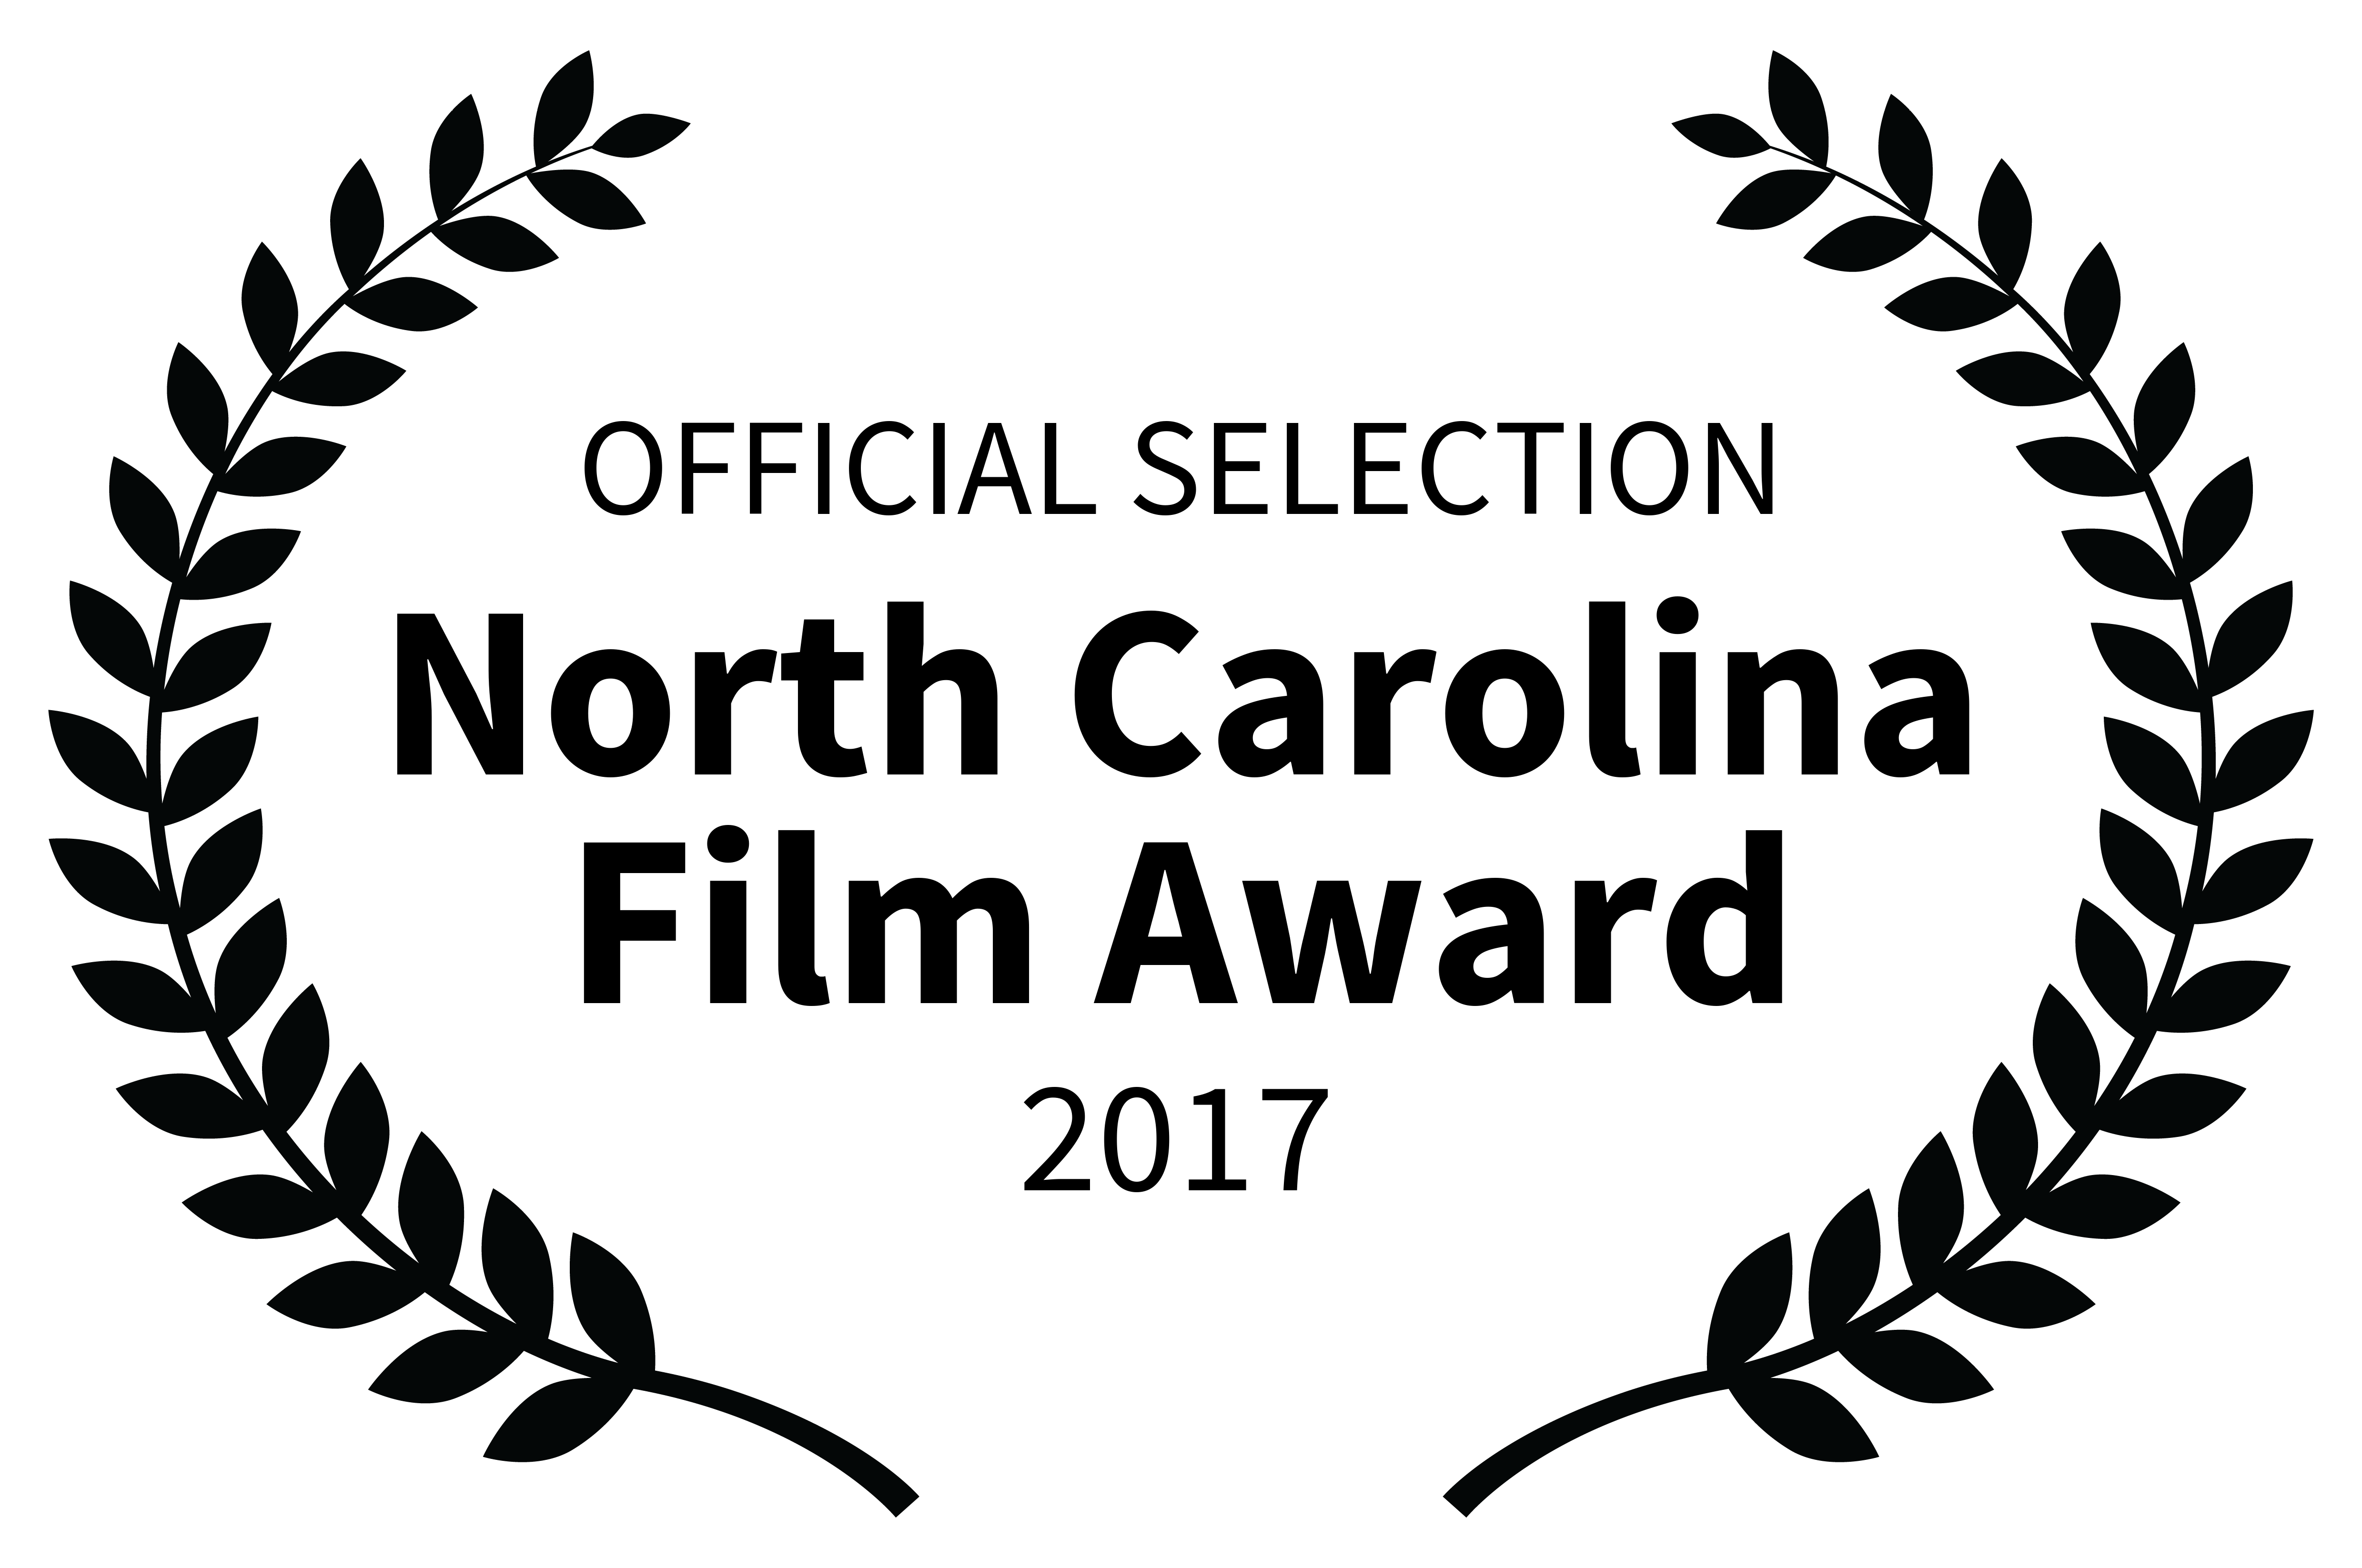 c/OFFICIALSELECTION-NorthCarolinaFilmAward-2017